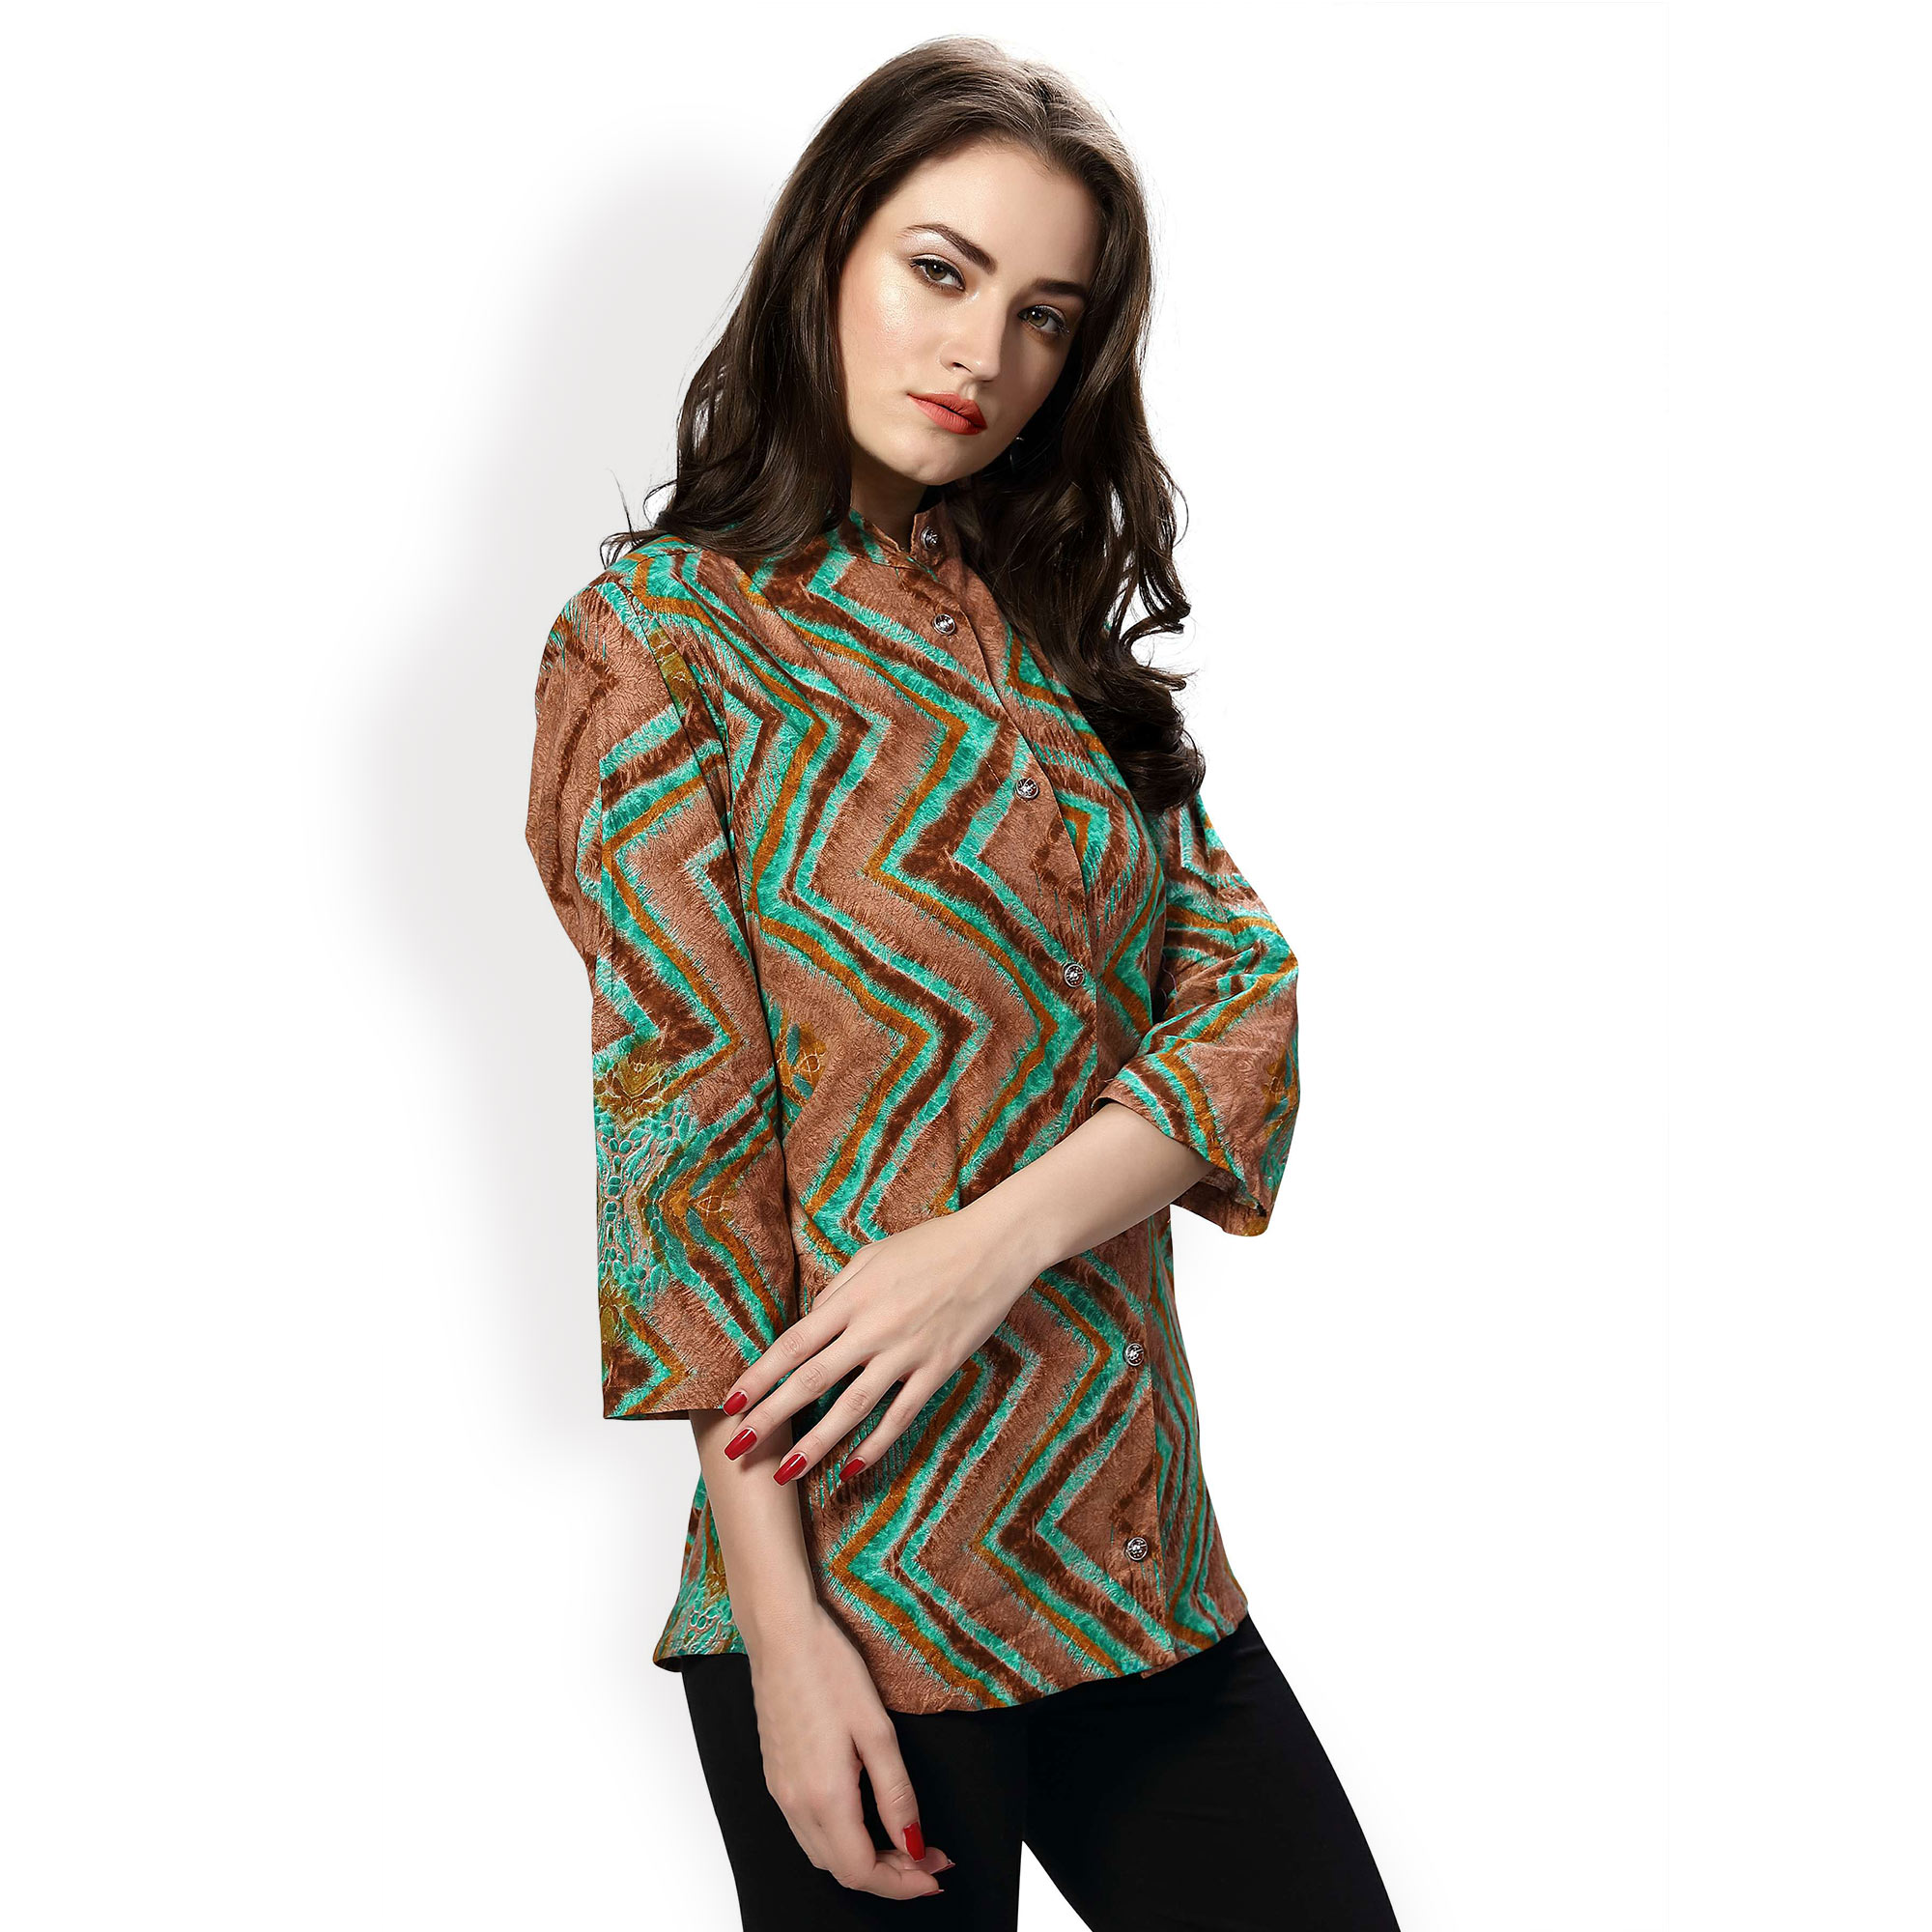 Multicolored Printed Shirt With Collar Neck